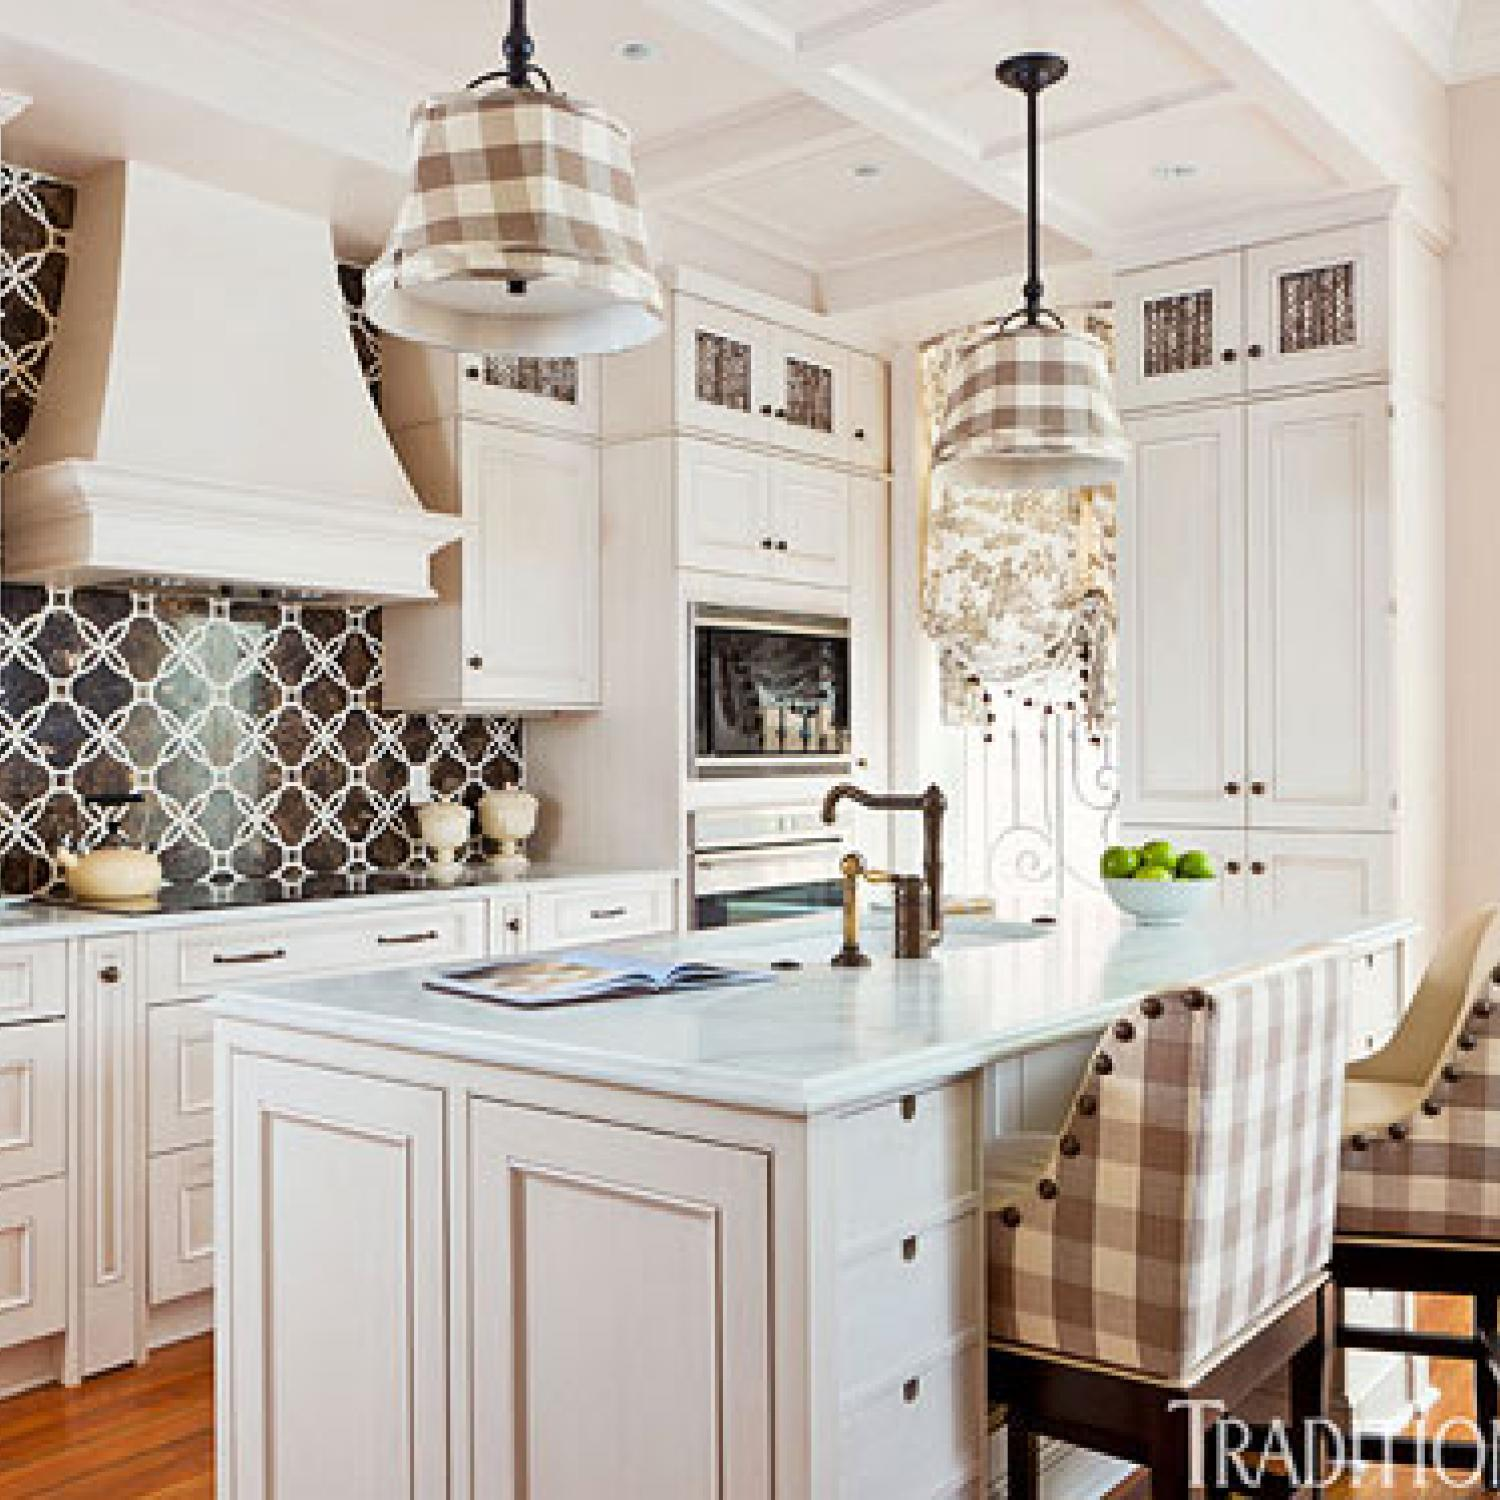 10 steps to fab kitchen page=10 2333